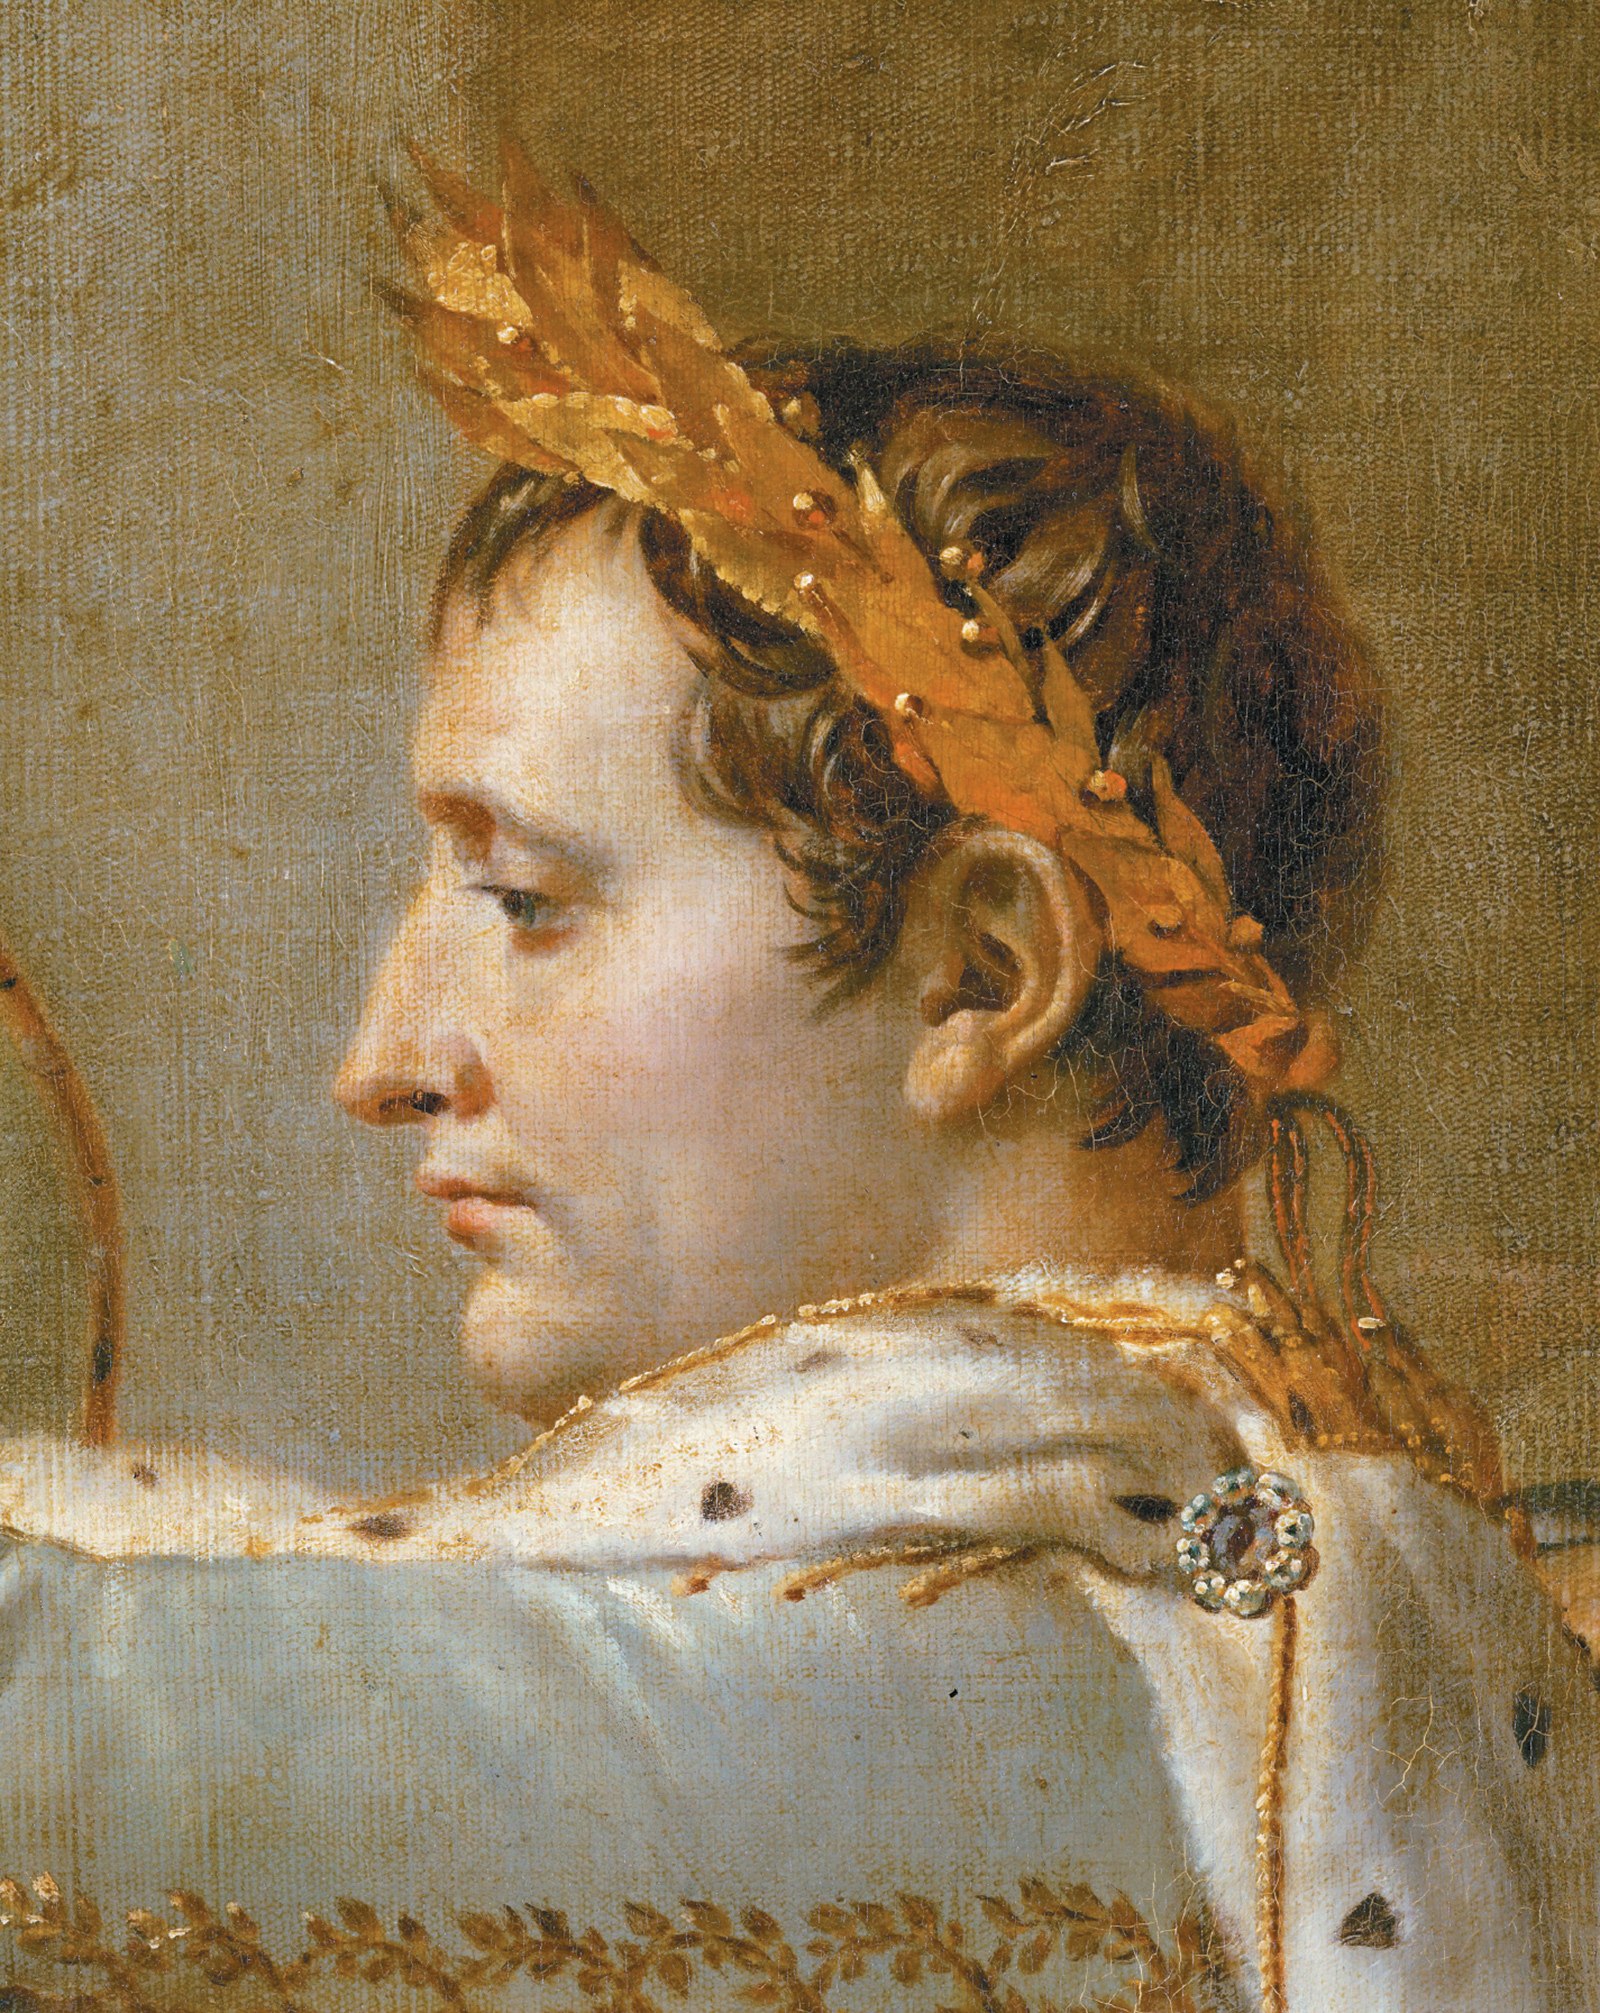 'The Coronation of Napoleon'; detail of a painting by Jacques-Louis David, 1806–1807